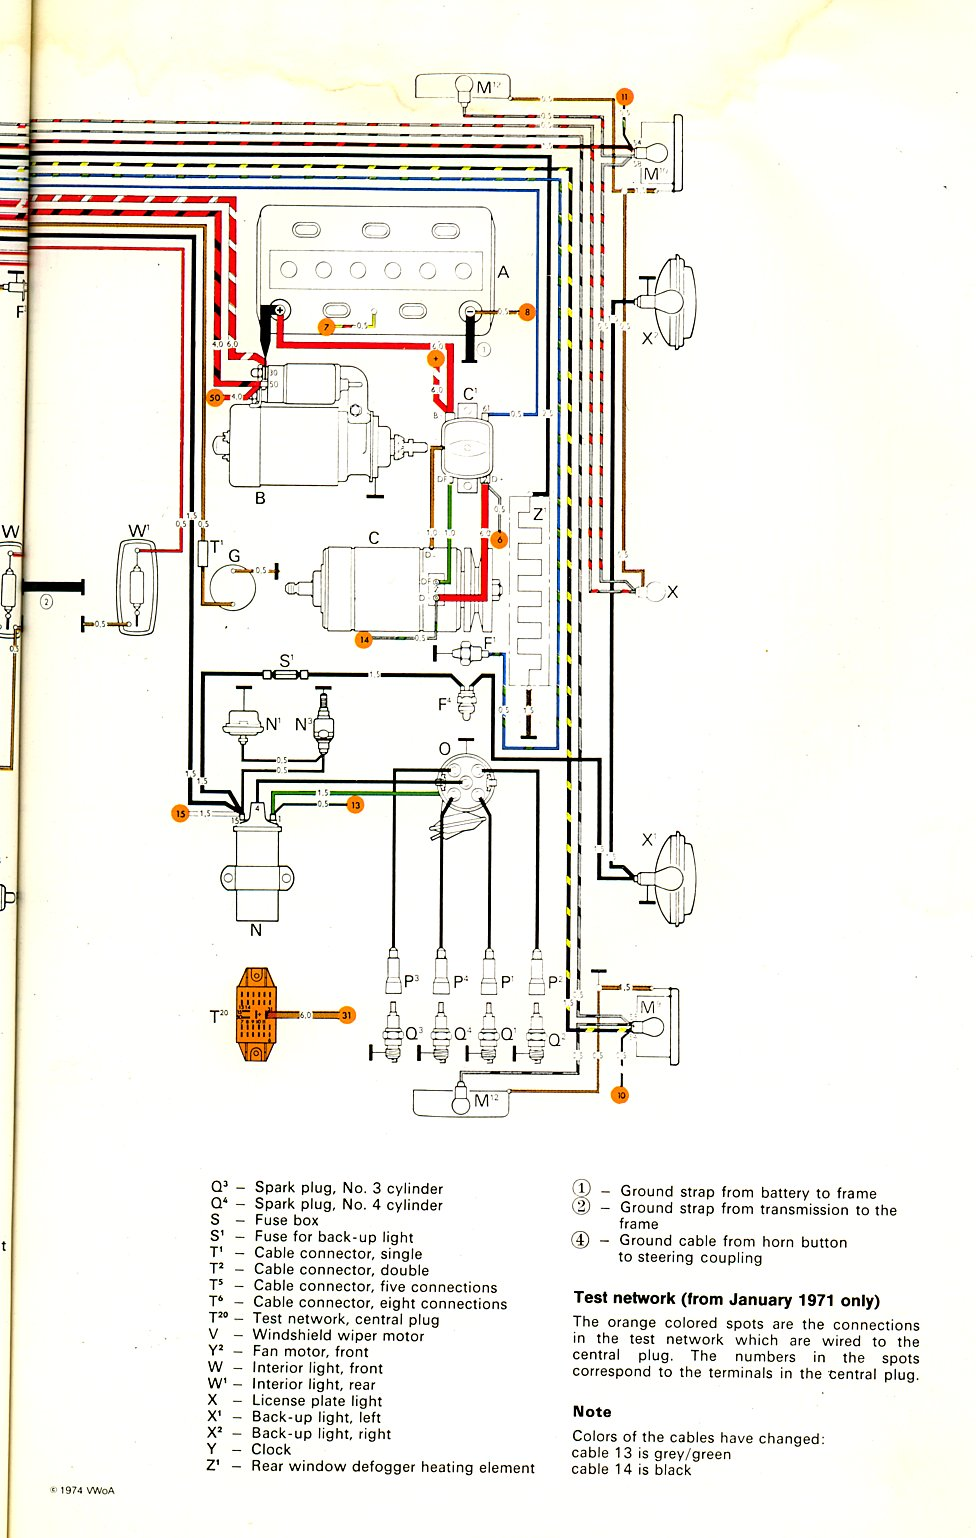 Type 2 Wiring Diagrams Dual Plug Diagram For Schematic